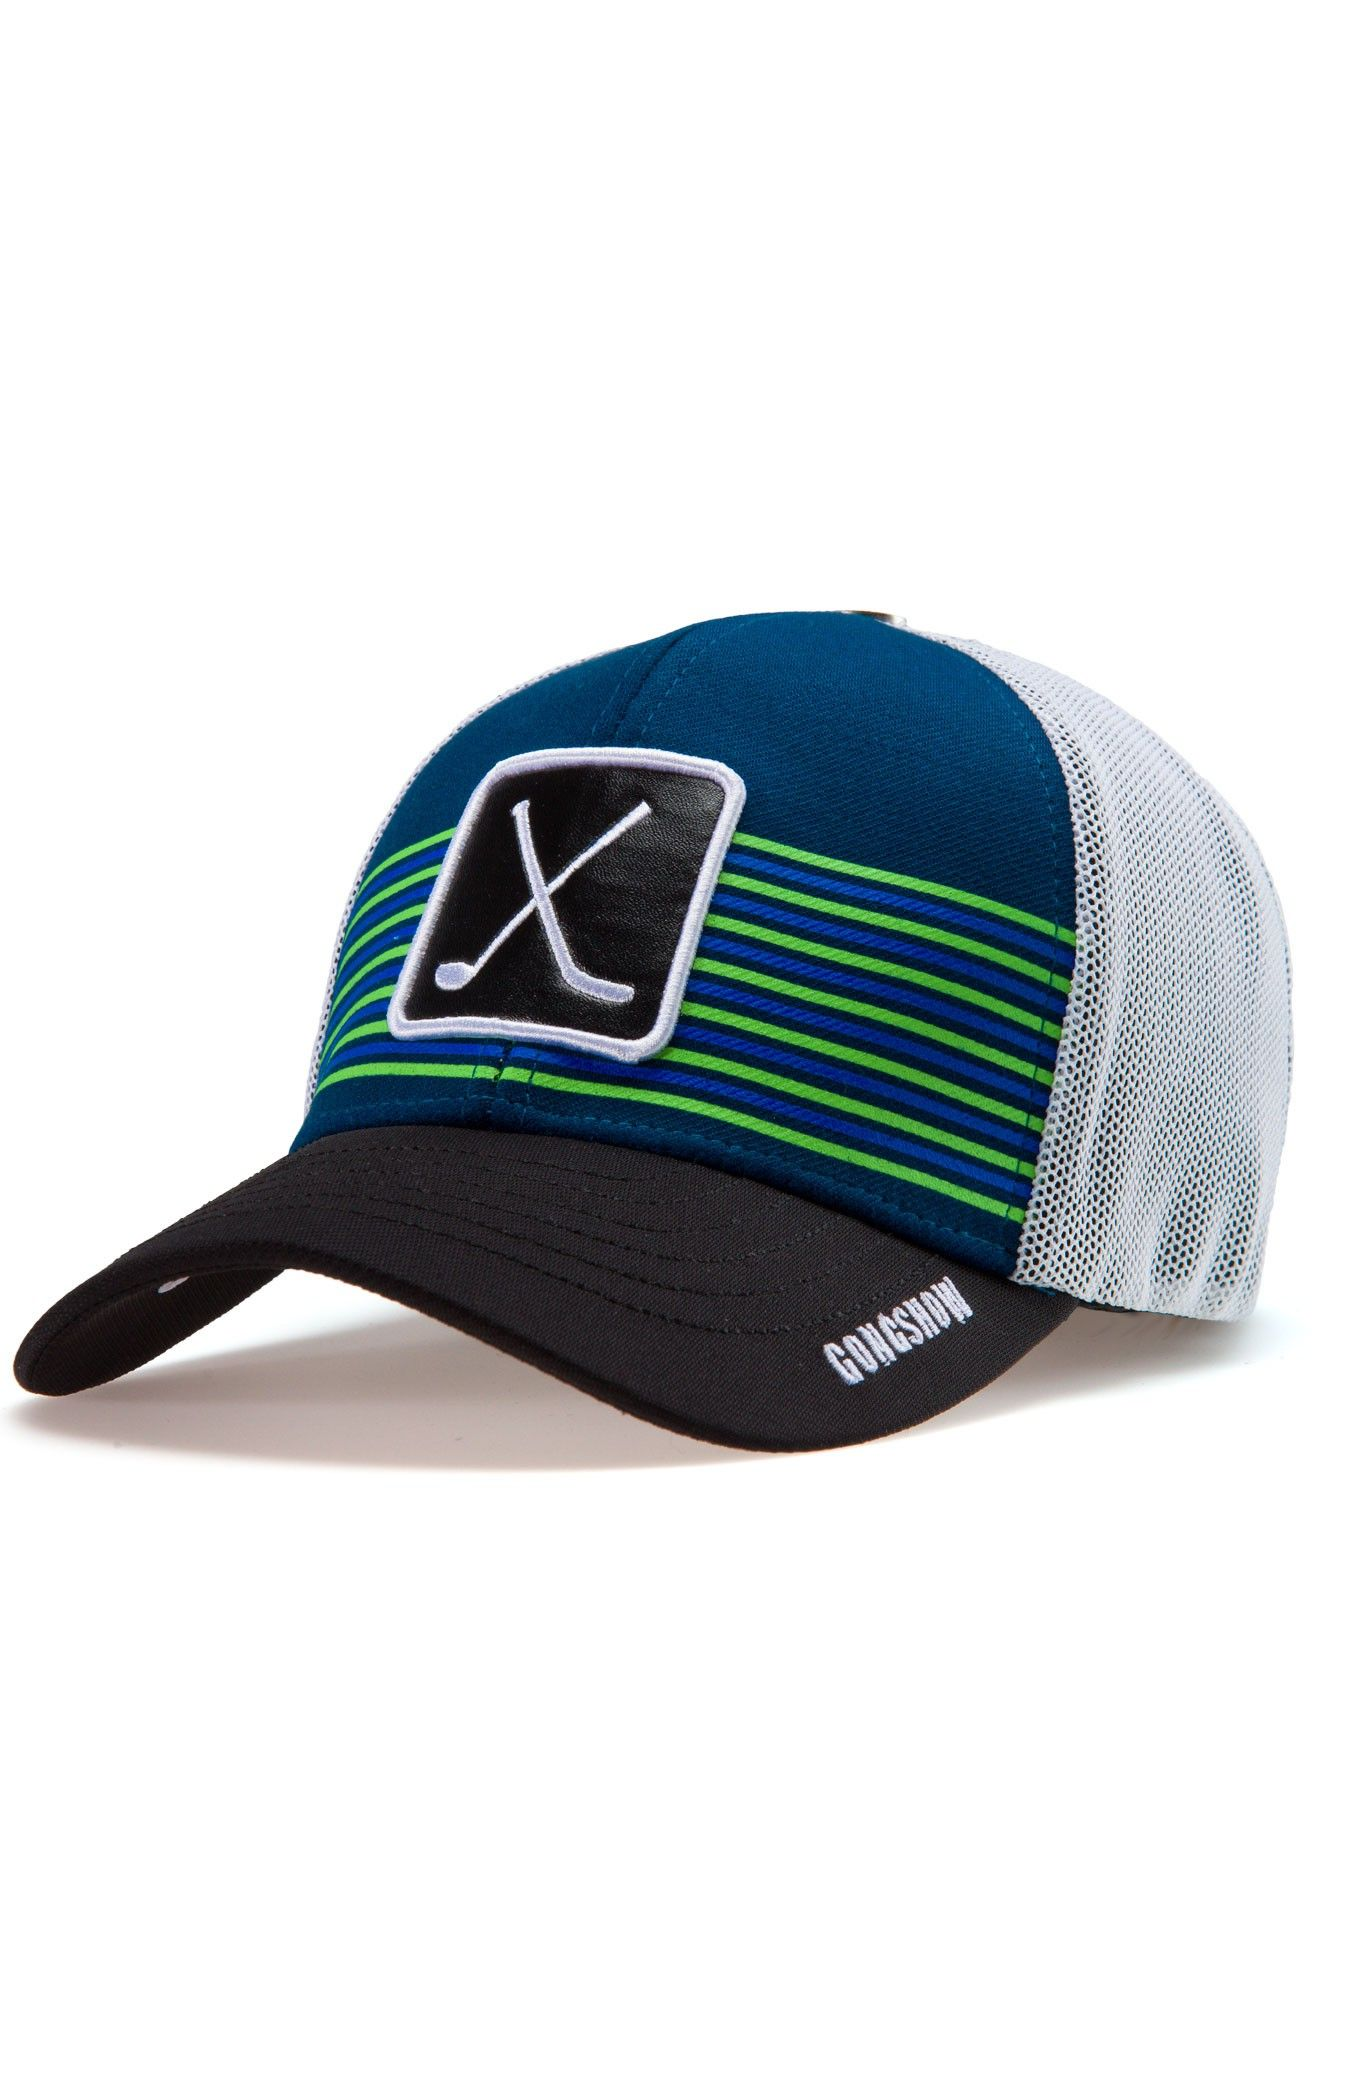 Chip to Cup Gongshow Lifestyle Hockey Golf Hat - Gongshow Gear - Lifestyle  Hockey Apparel 947d4e3aed9df